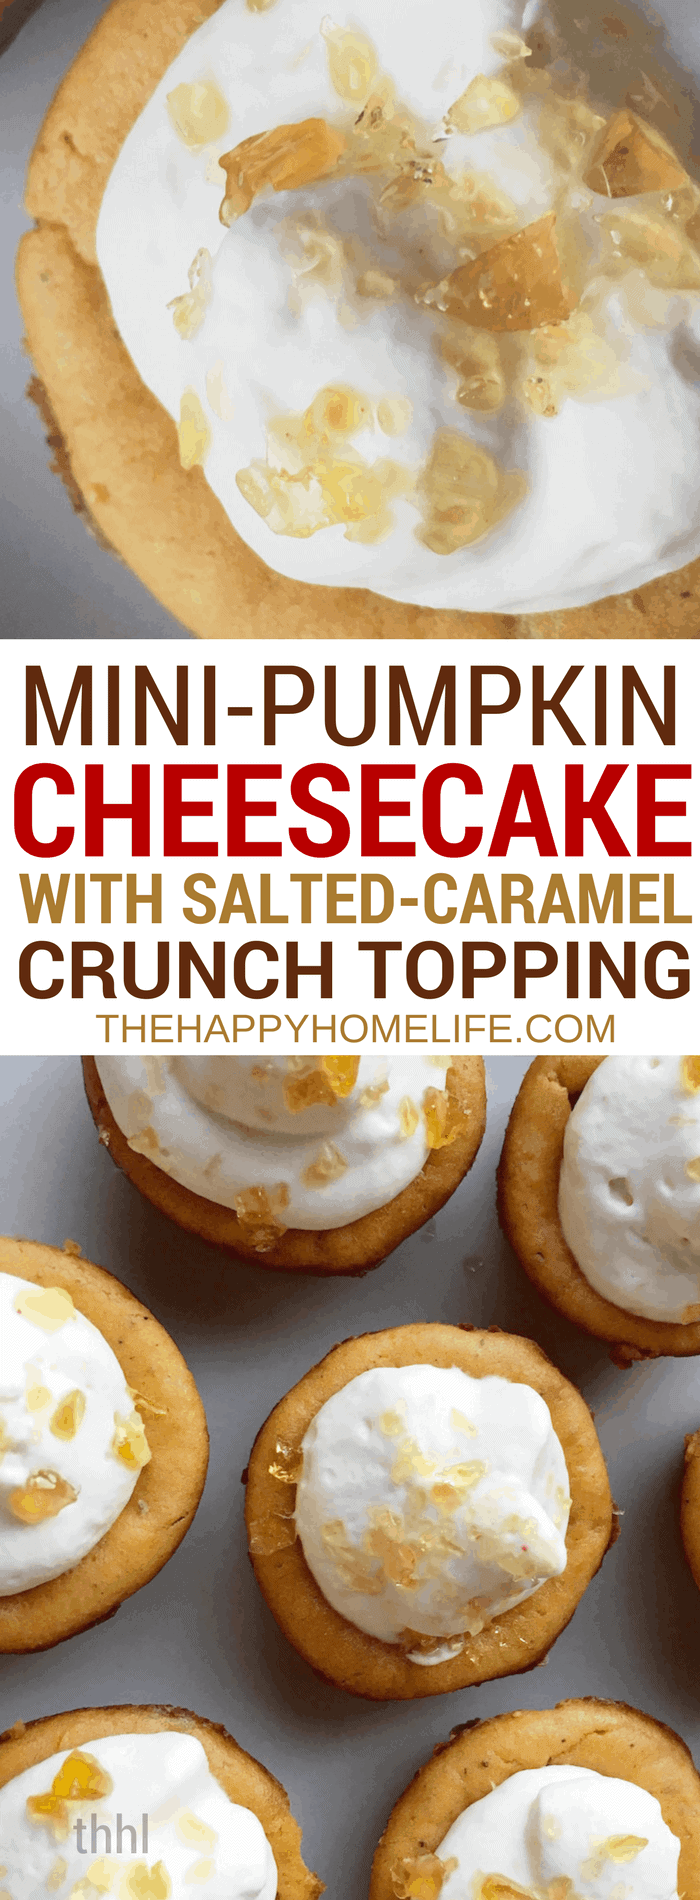 Learn how to make mini pumpkin with salted-caramel crunch topping. Detailed ingredients to make this delicious mini pumpkin cheesecake.